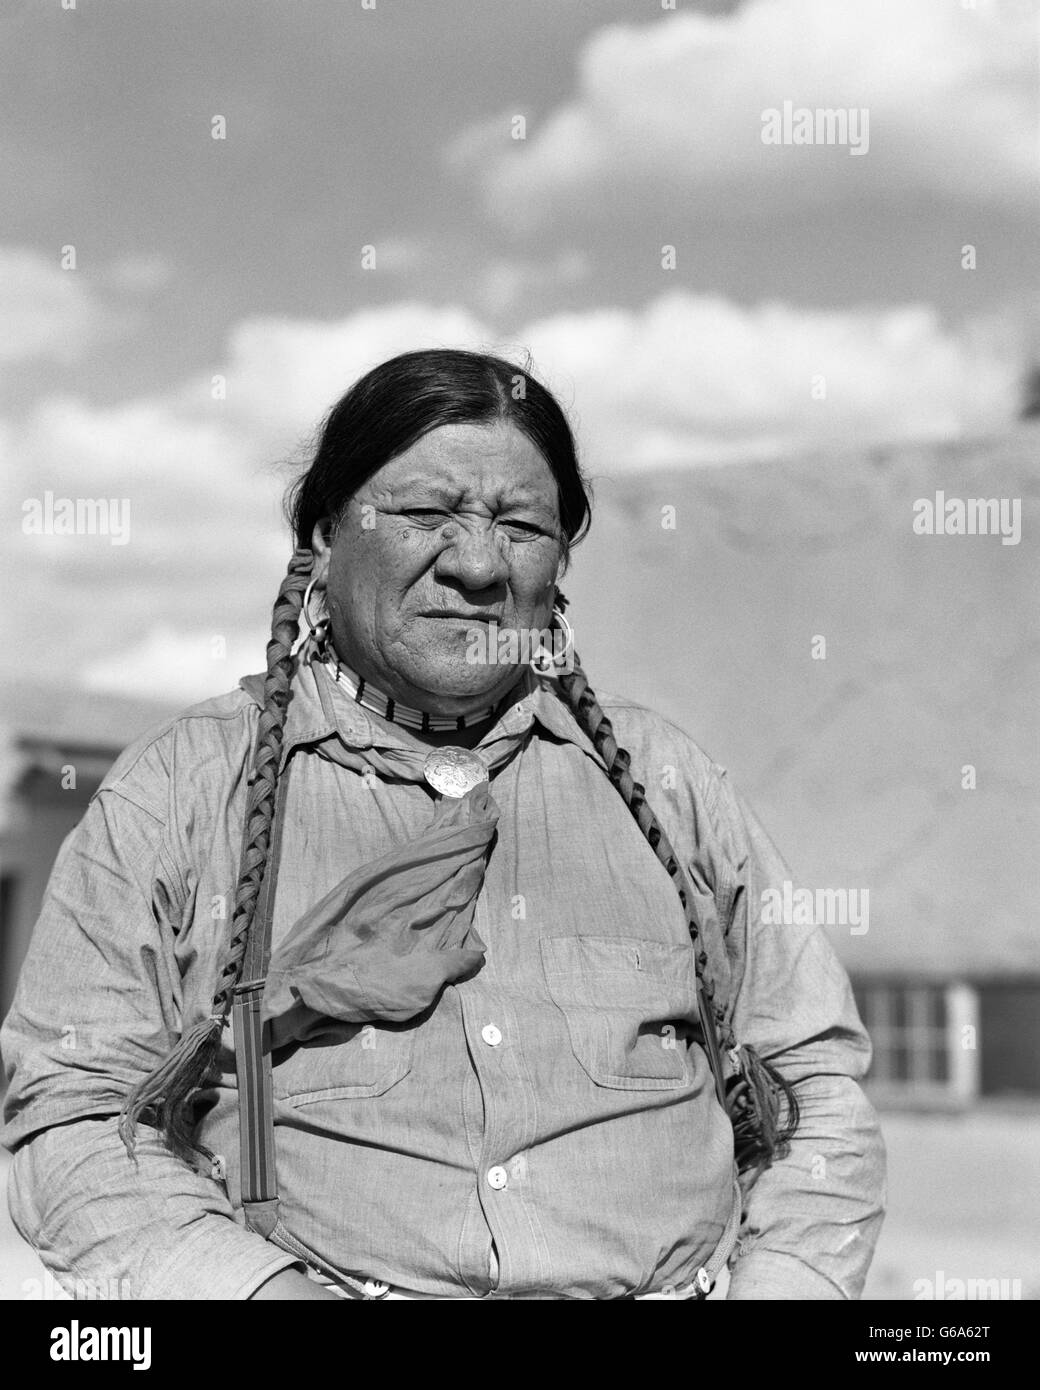 1930s PORTRAIT SERIOUS NATIVE AMERICAN INDIAN MAN SAN ILDEFONSO PUEBLO NEW MEXICO USA - Stock Image